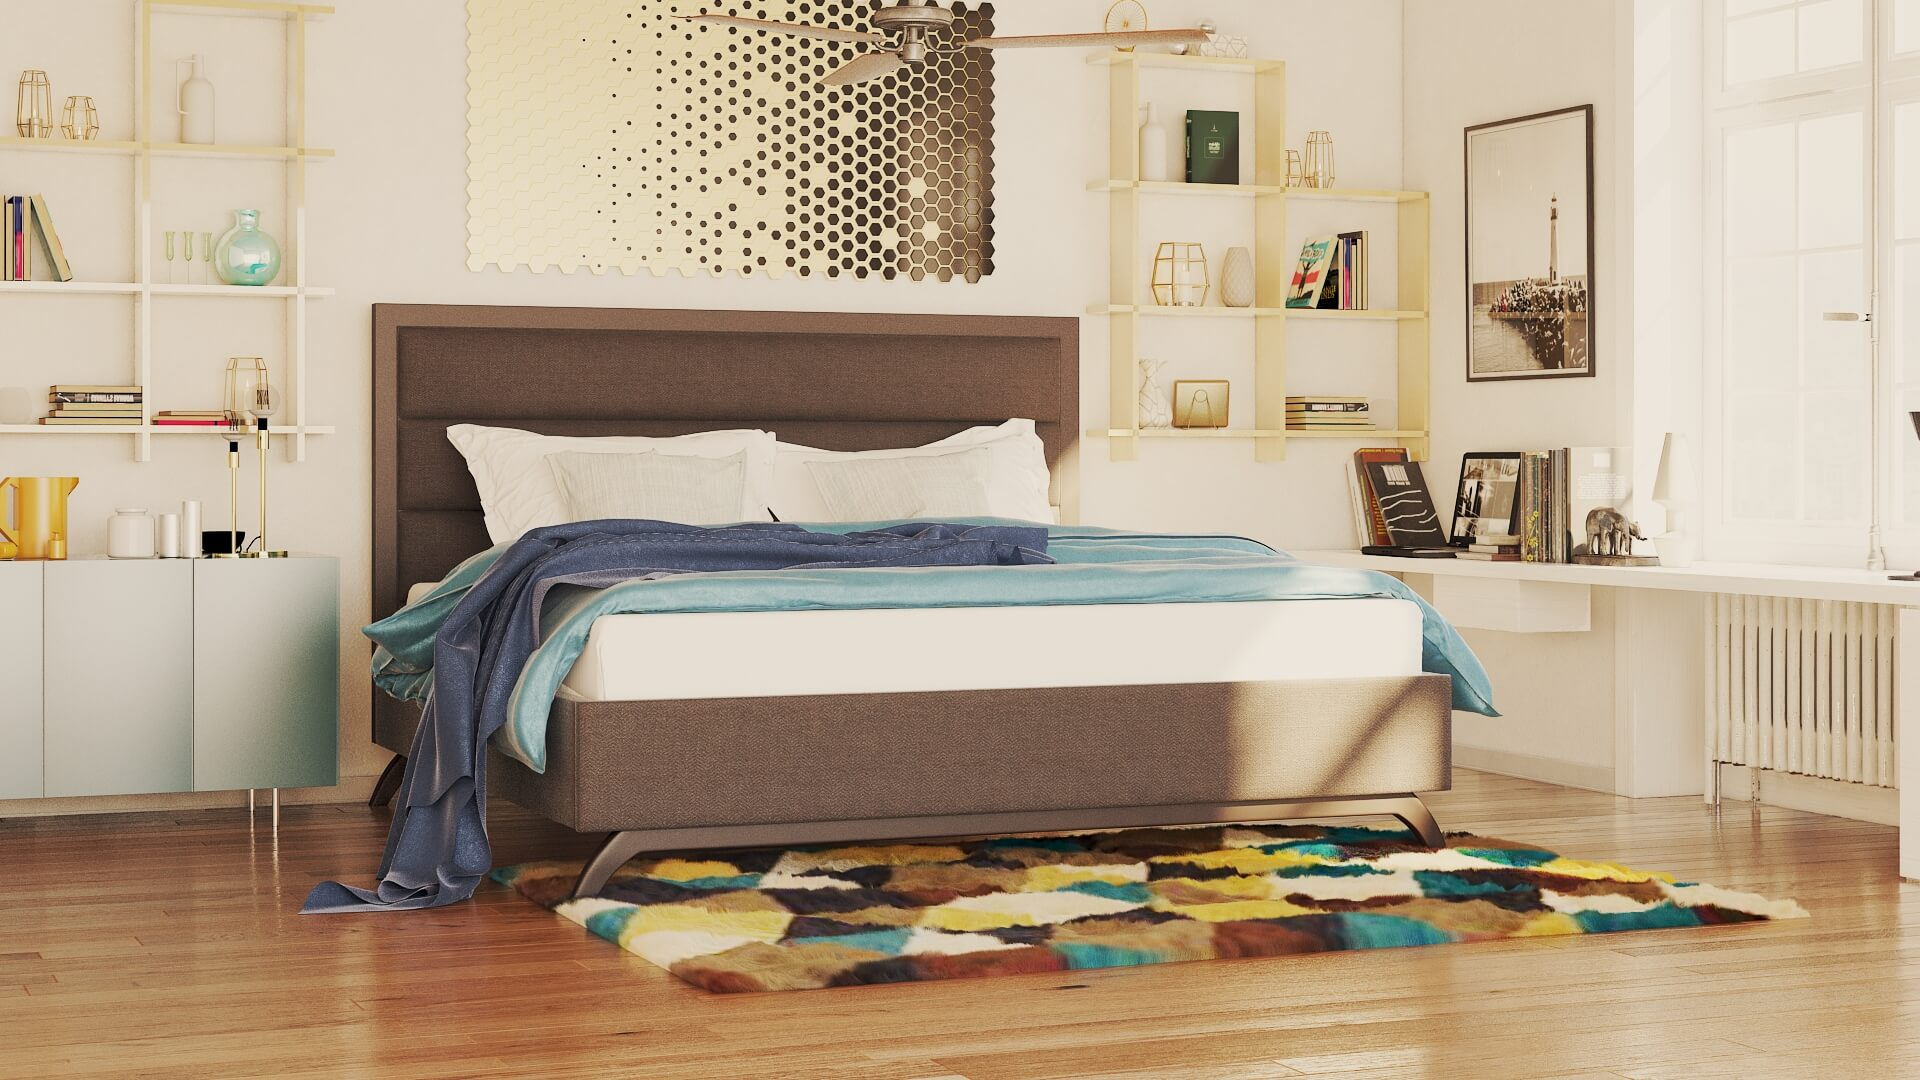 meliano bed furniture gallery 3